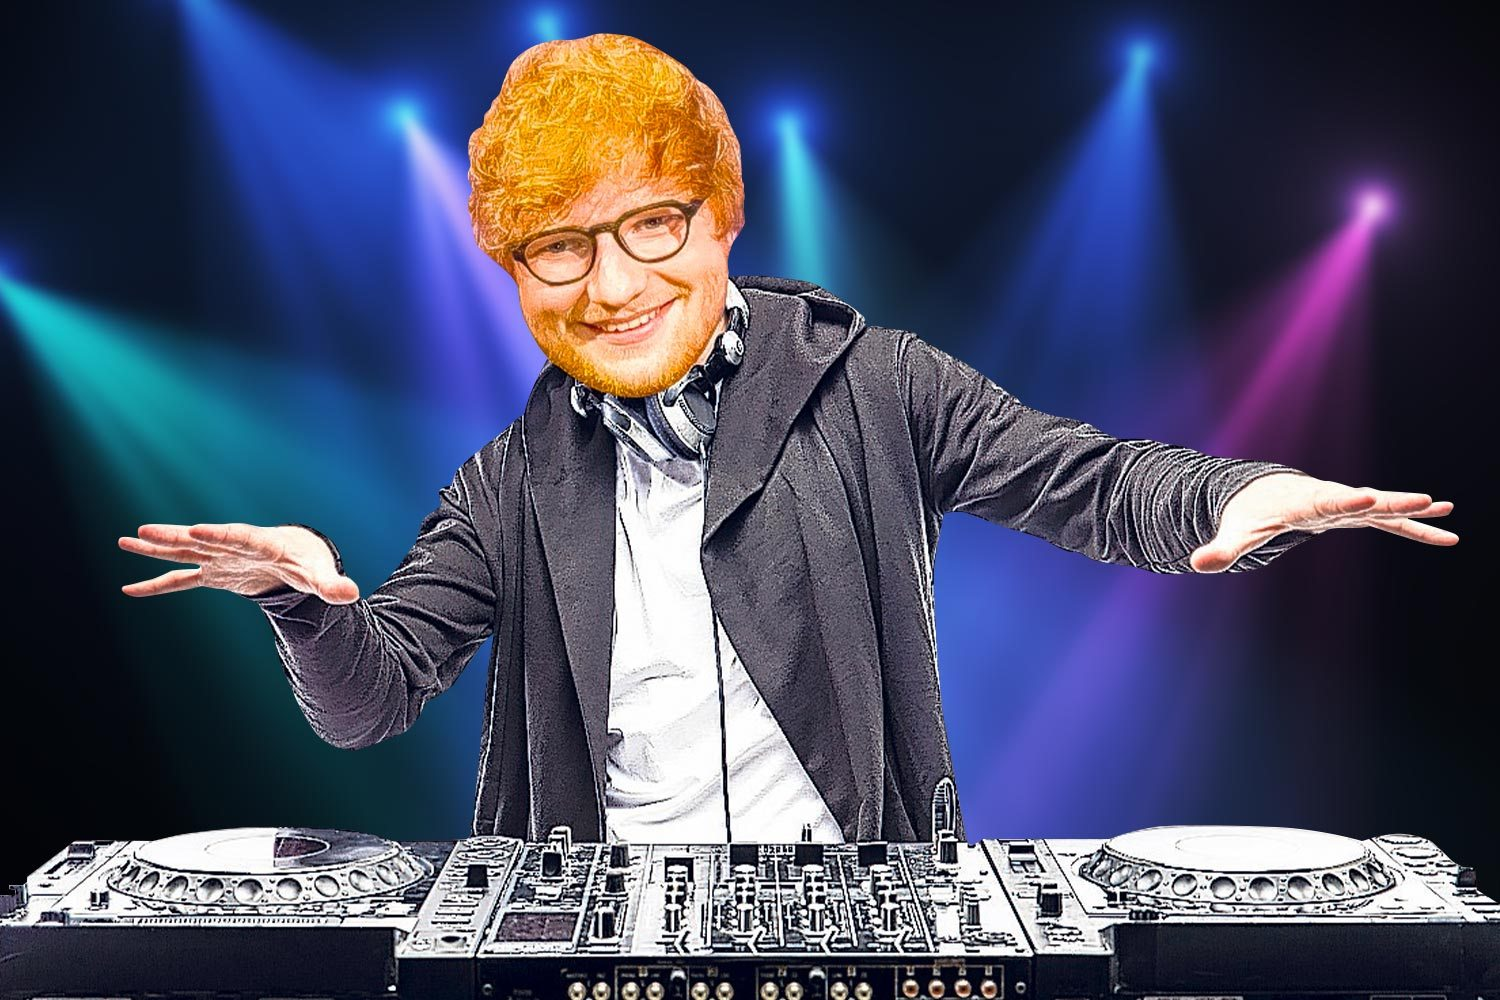 Ed Sheeran tries his hand at DJing with his first remix under the alias 'Gingerbread mix'